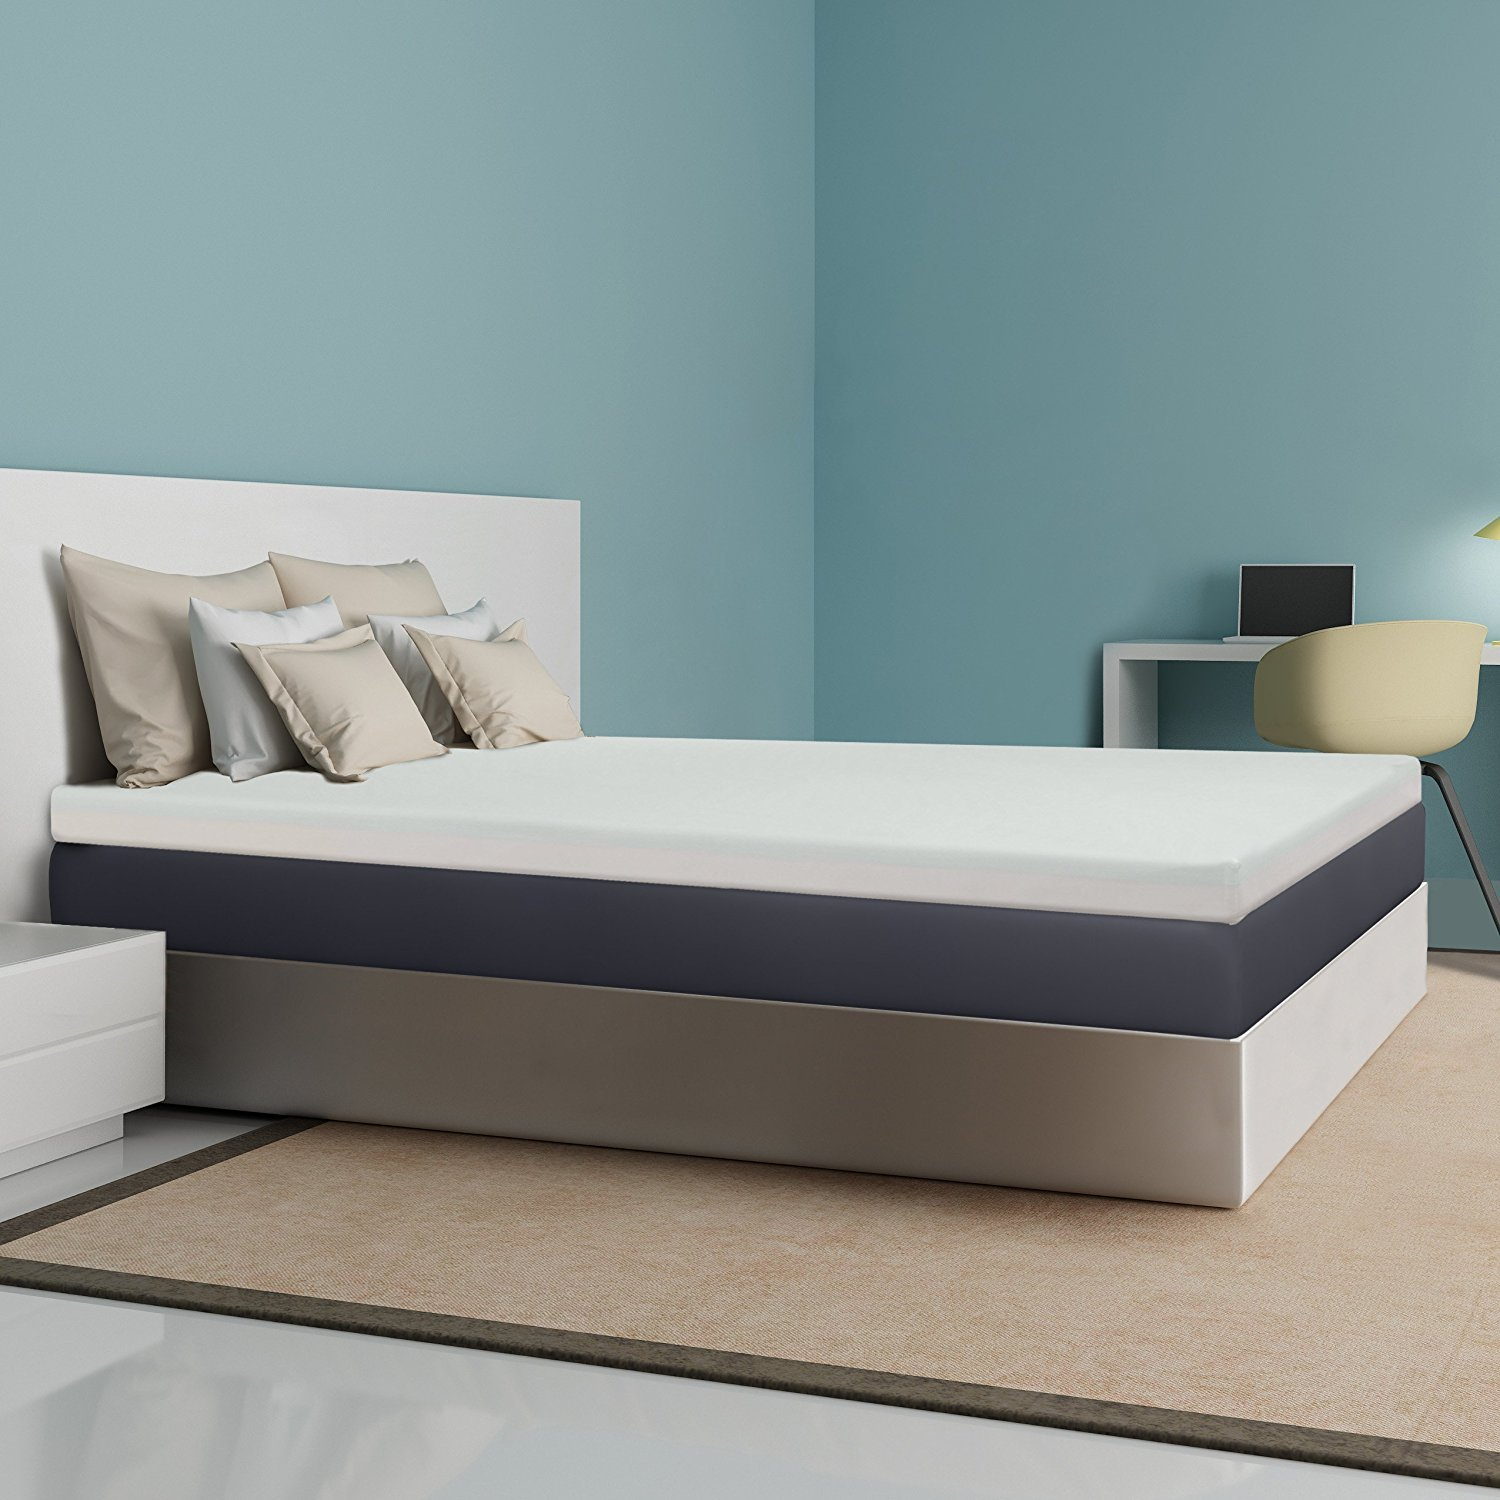 foam how thickness field do memory mattress what is best know prices tempurpedic pad to you green a topper choose for